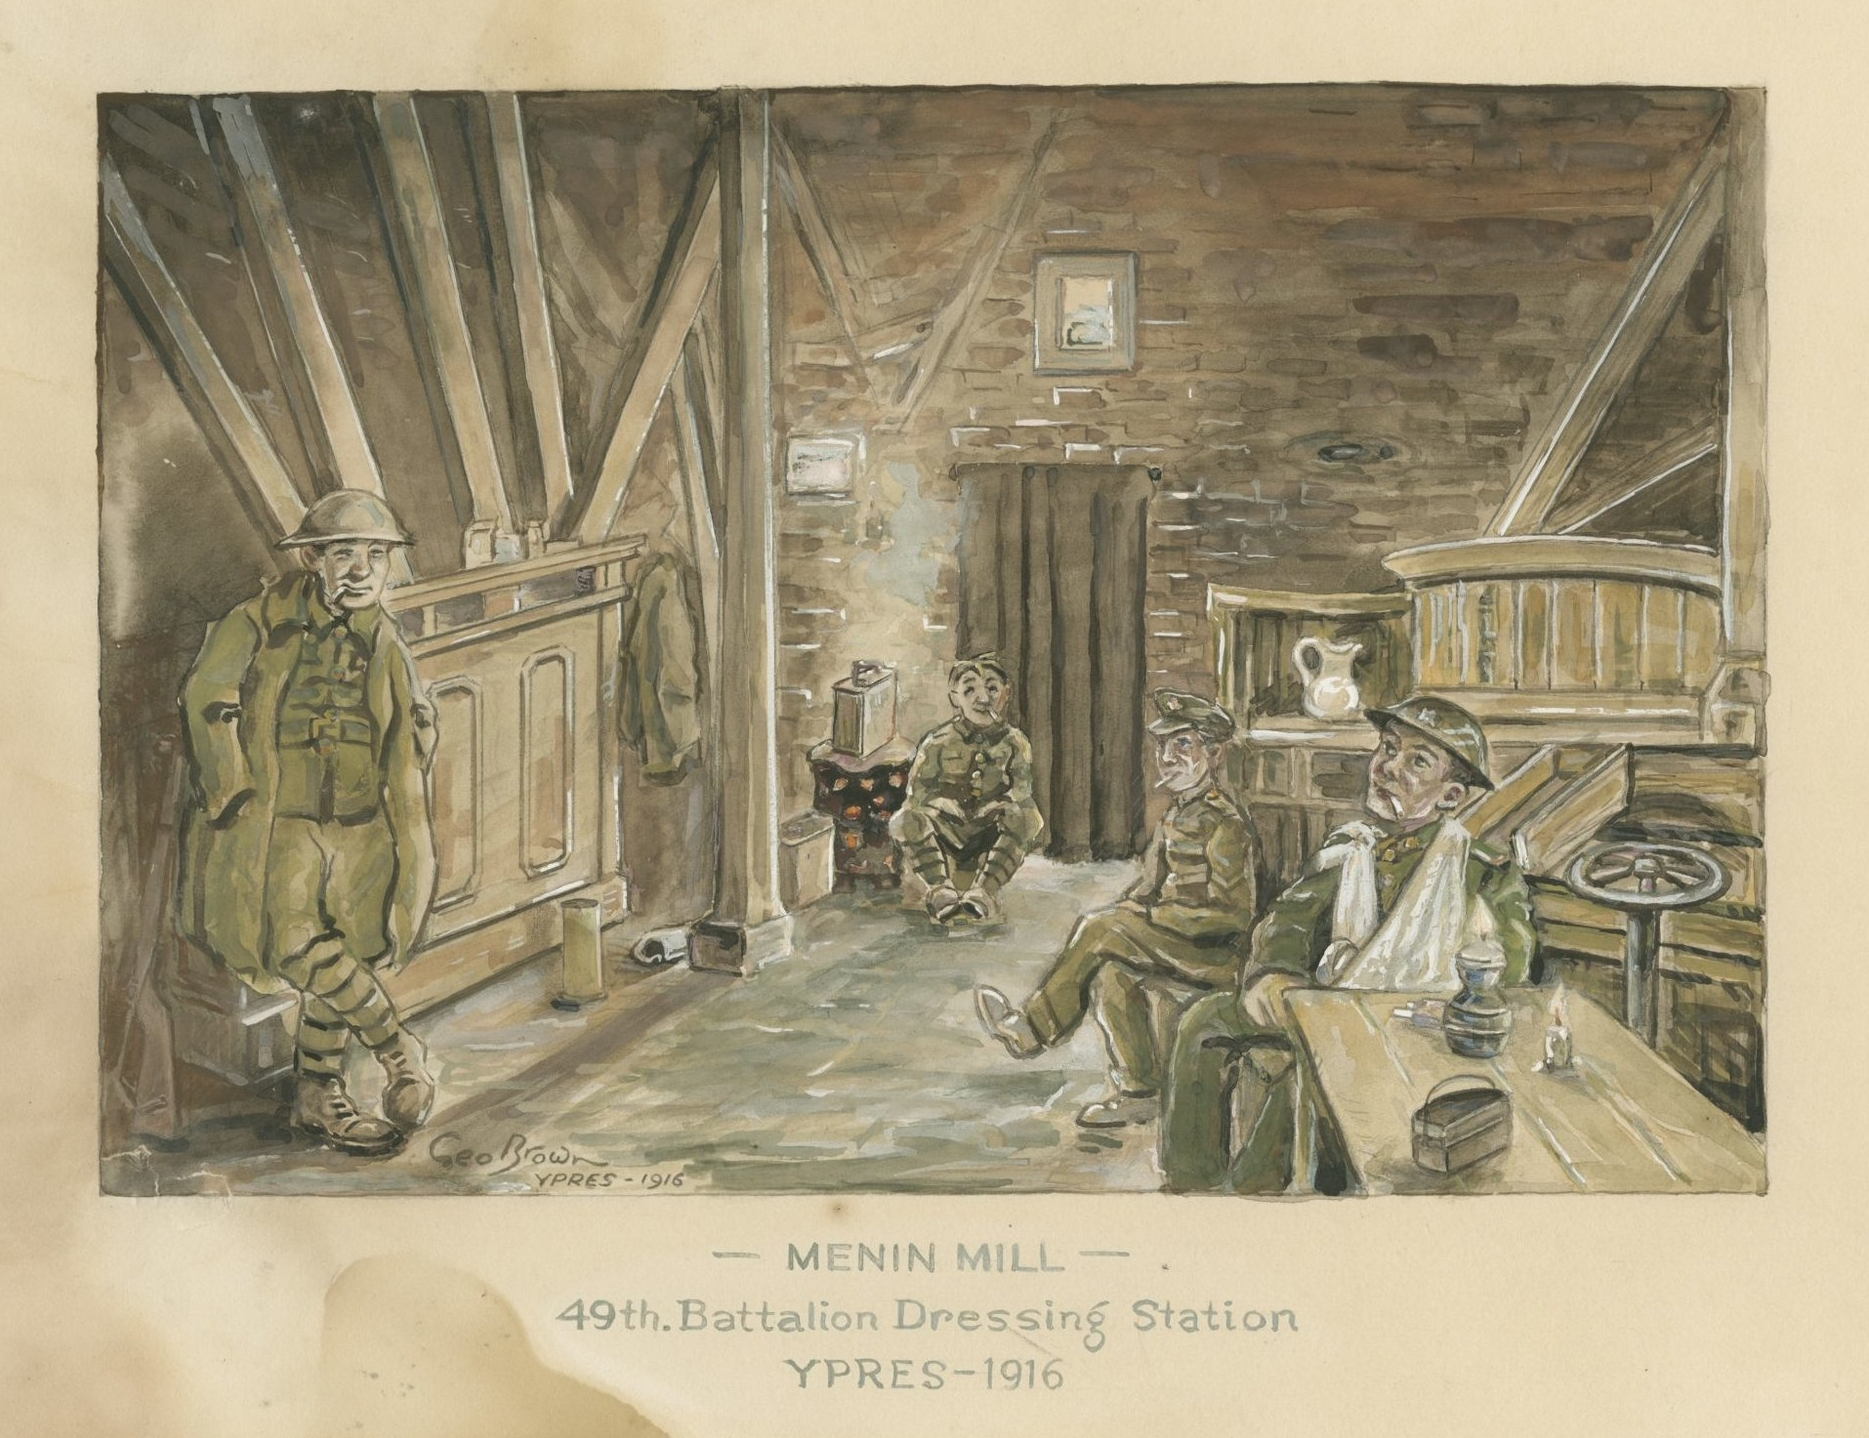 The Medical Officer of the 31st set up the Battalion Dressing Station near Menin Mill, alongside several other formations. It would have been far more chaotic than the scene above. The Medical Officer of the 31st describes 'a constant stream of casualties'.